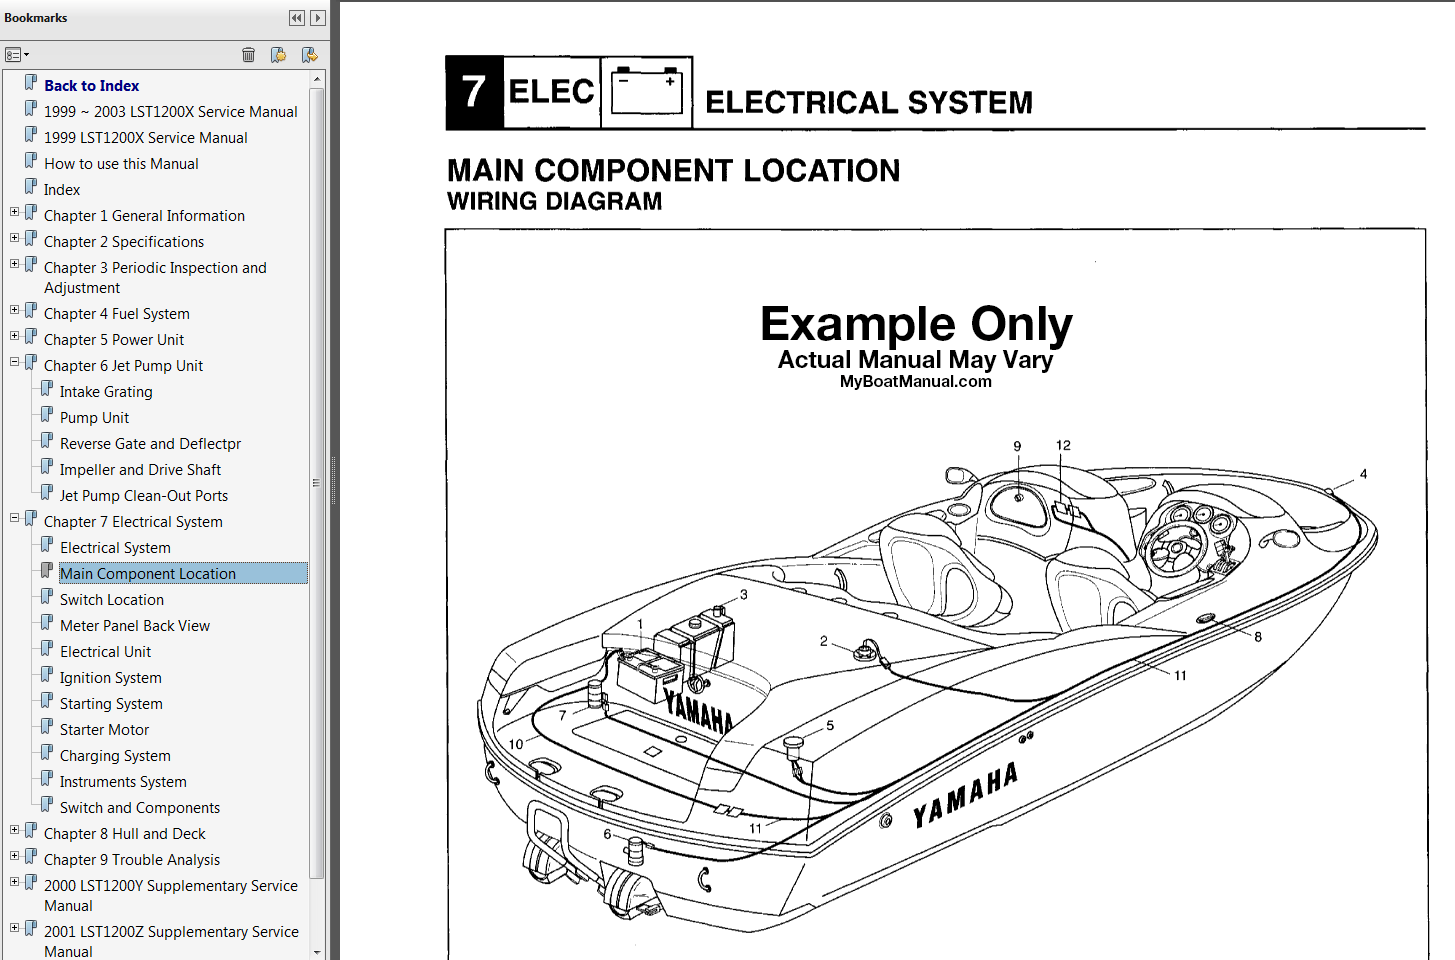 Yamaha Ls2000 Wiring Diagram | Wiring Schematic Diagram on